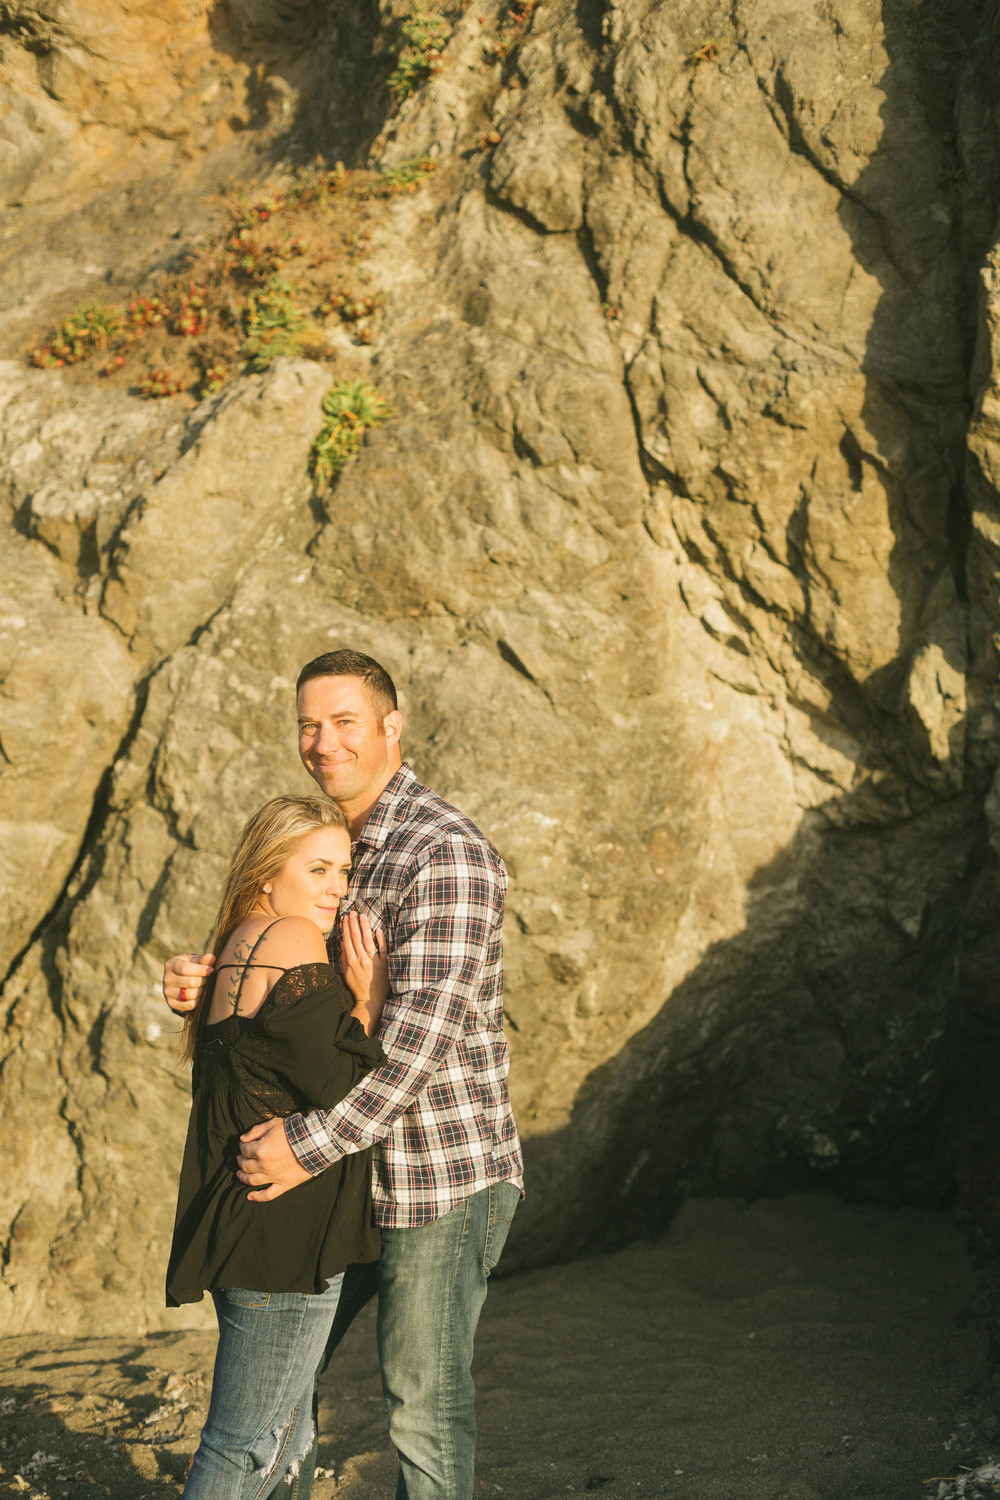 rocky-cliff-hug-couple